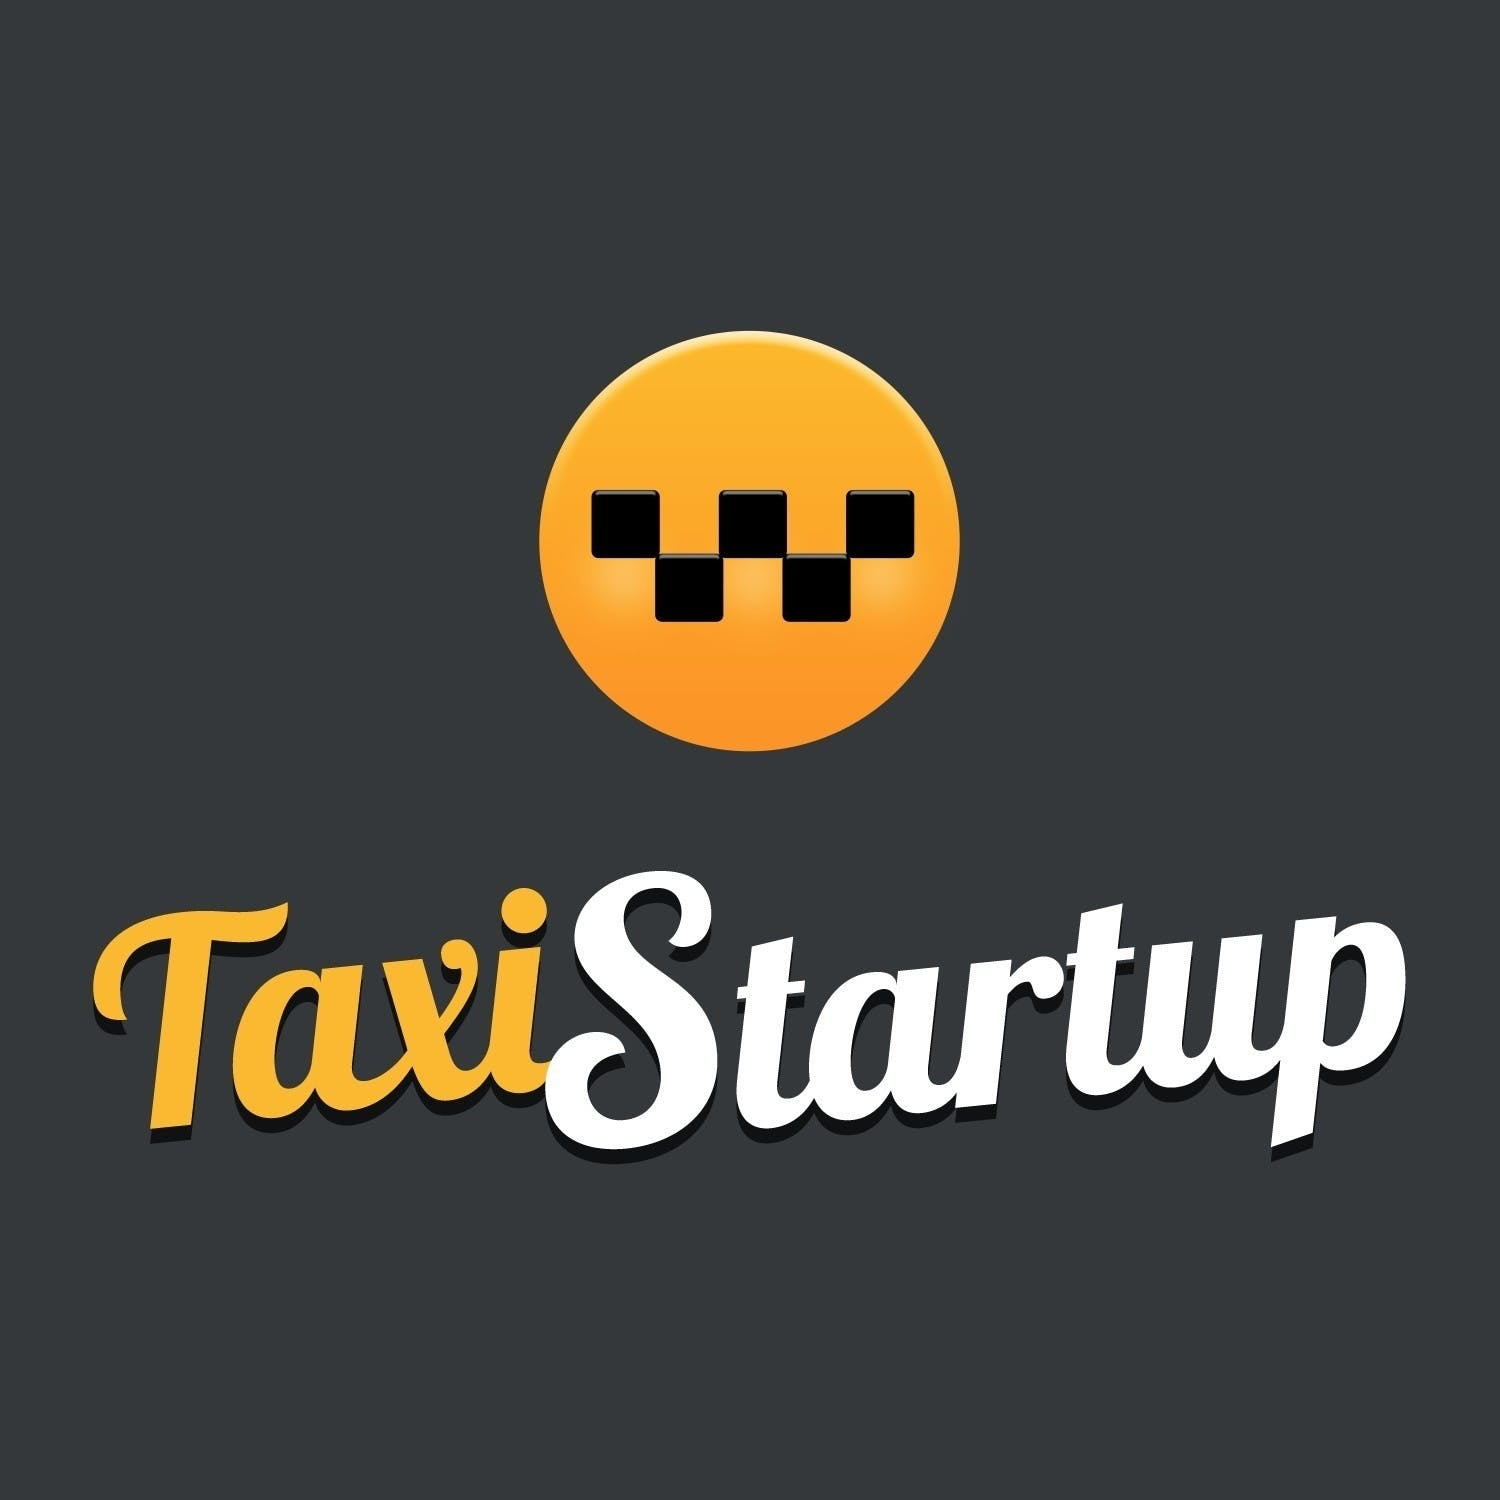 TaxiStartup